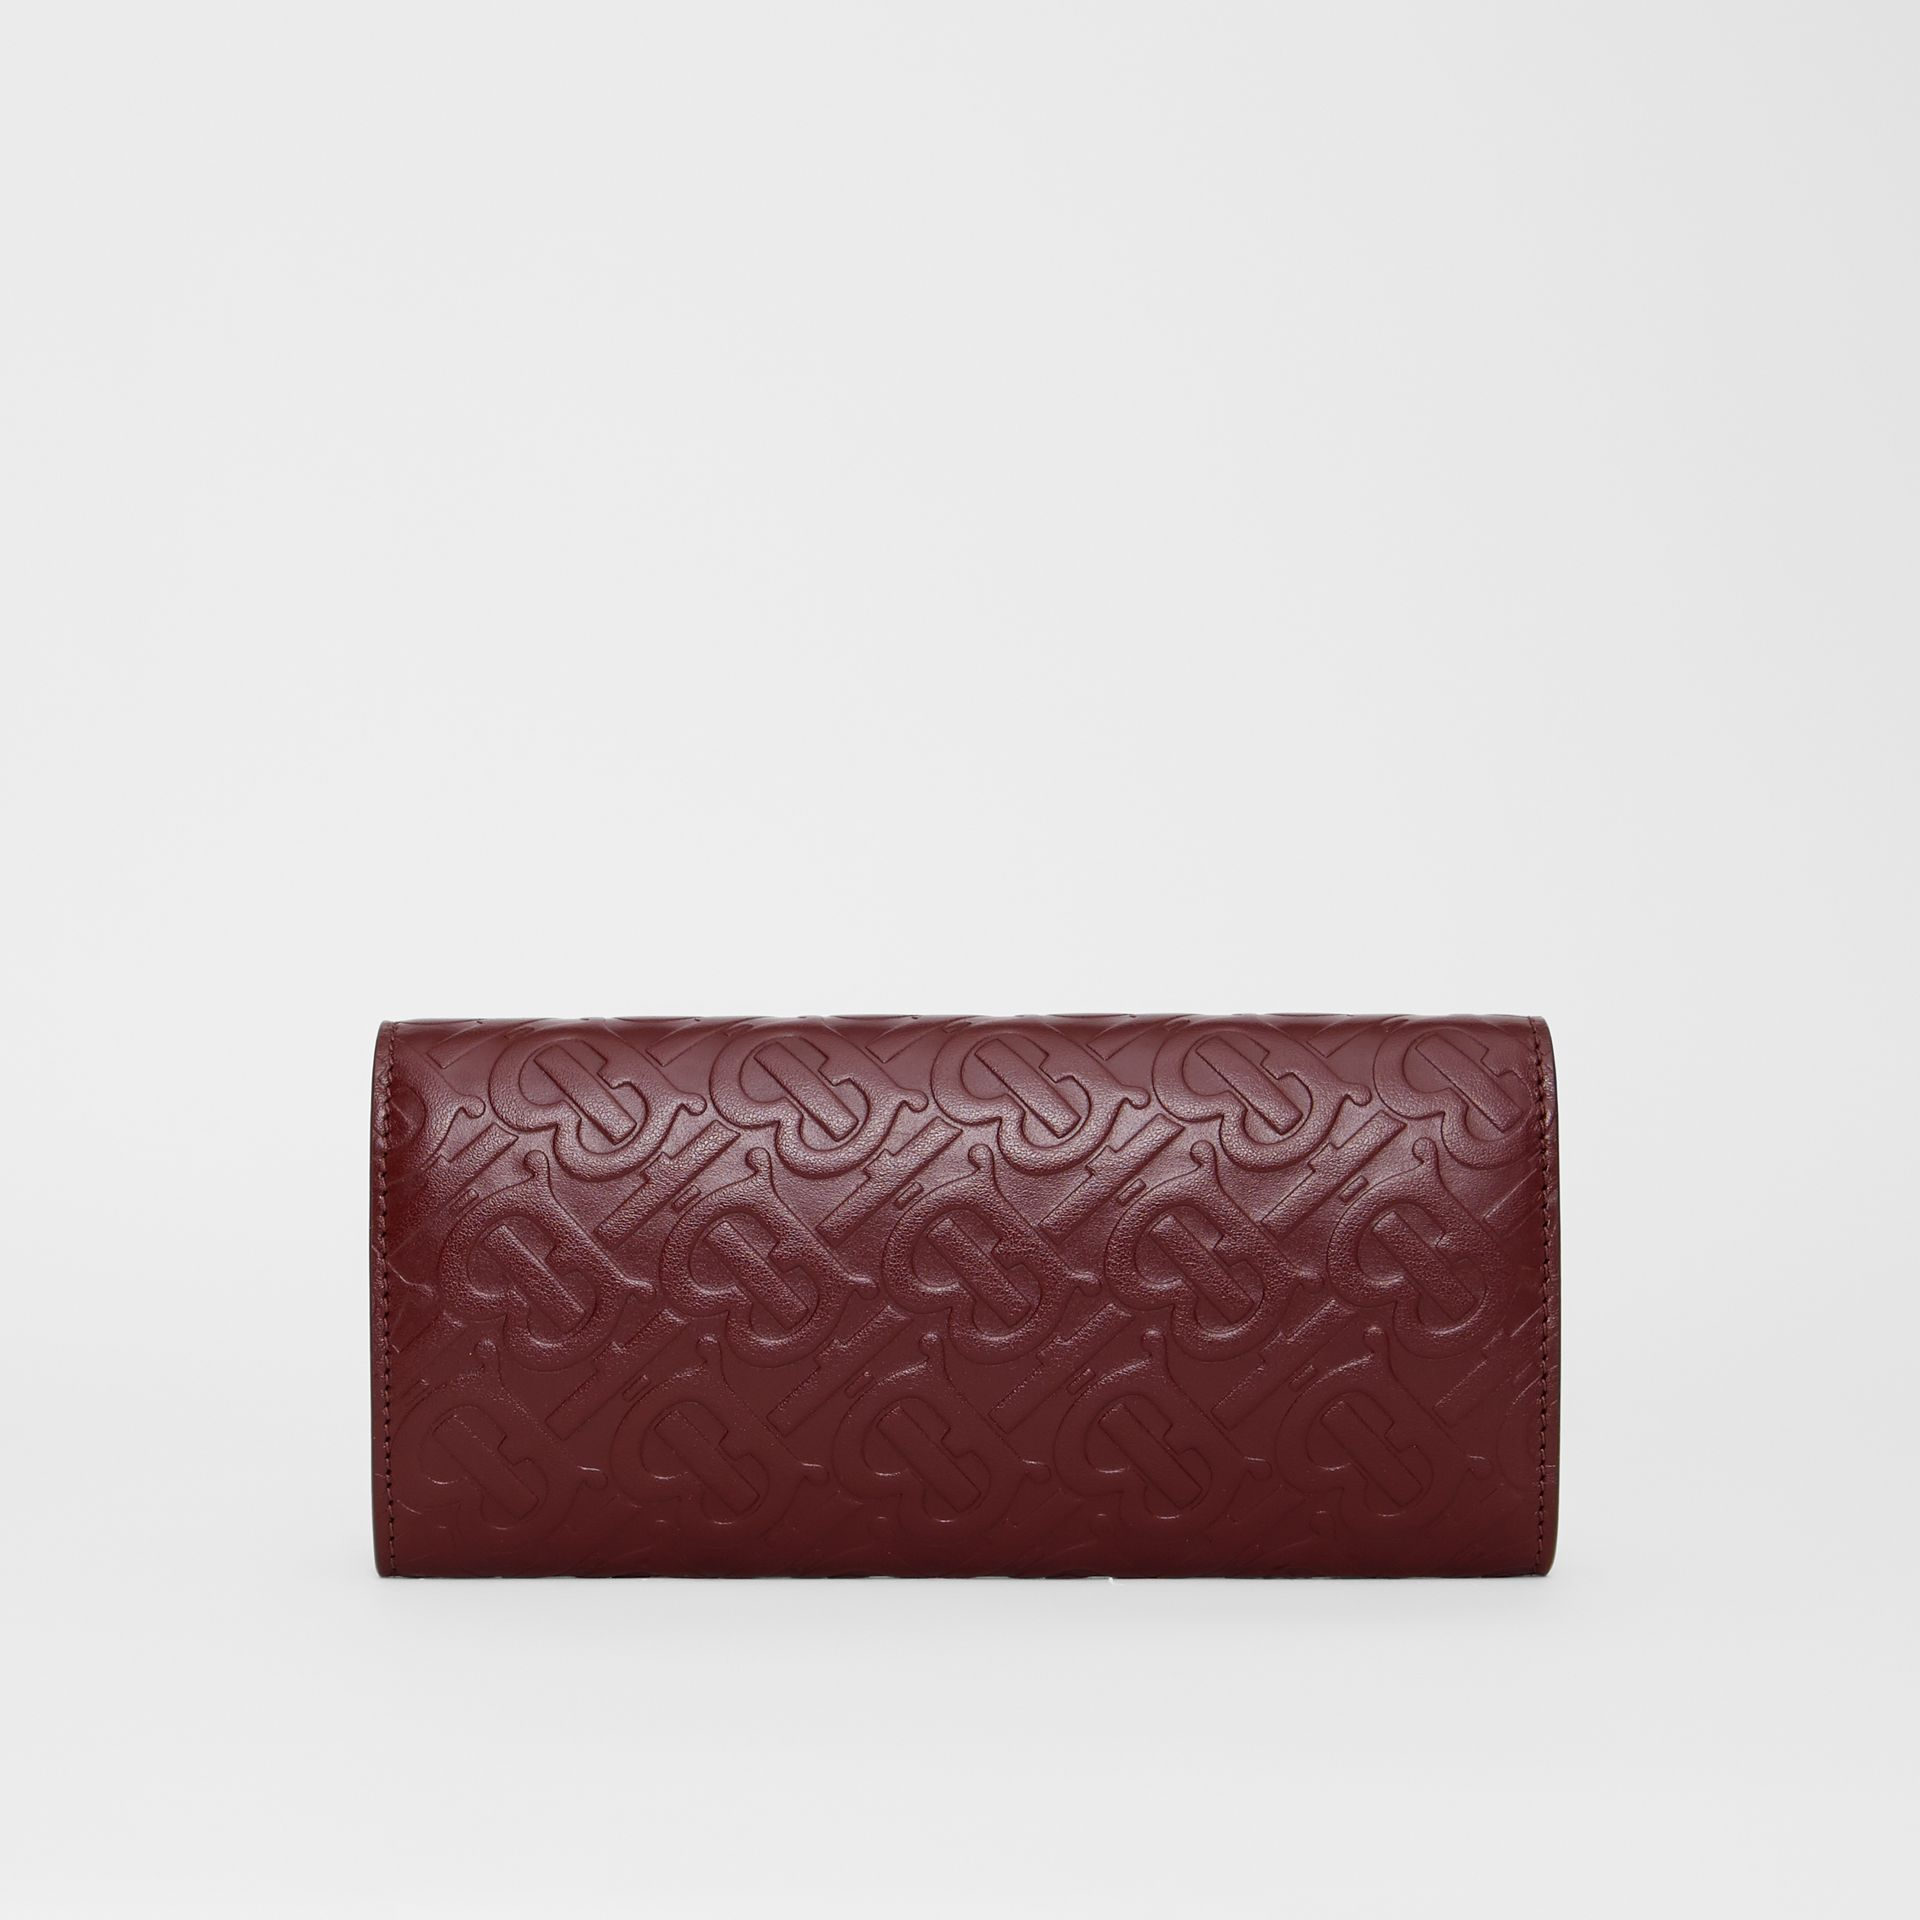 Monogram Leather Continental Wallet in Oxblood - Women | Burberry - gallery image 5